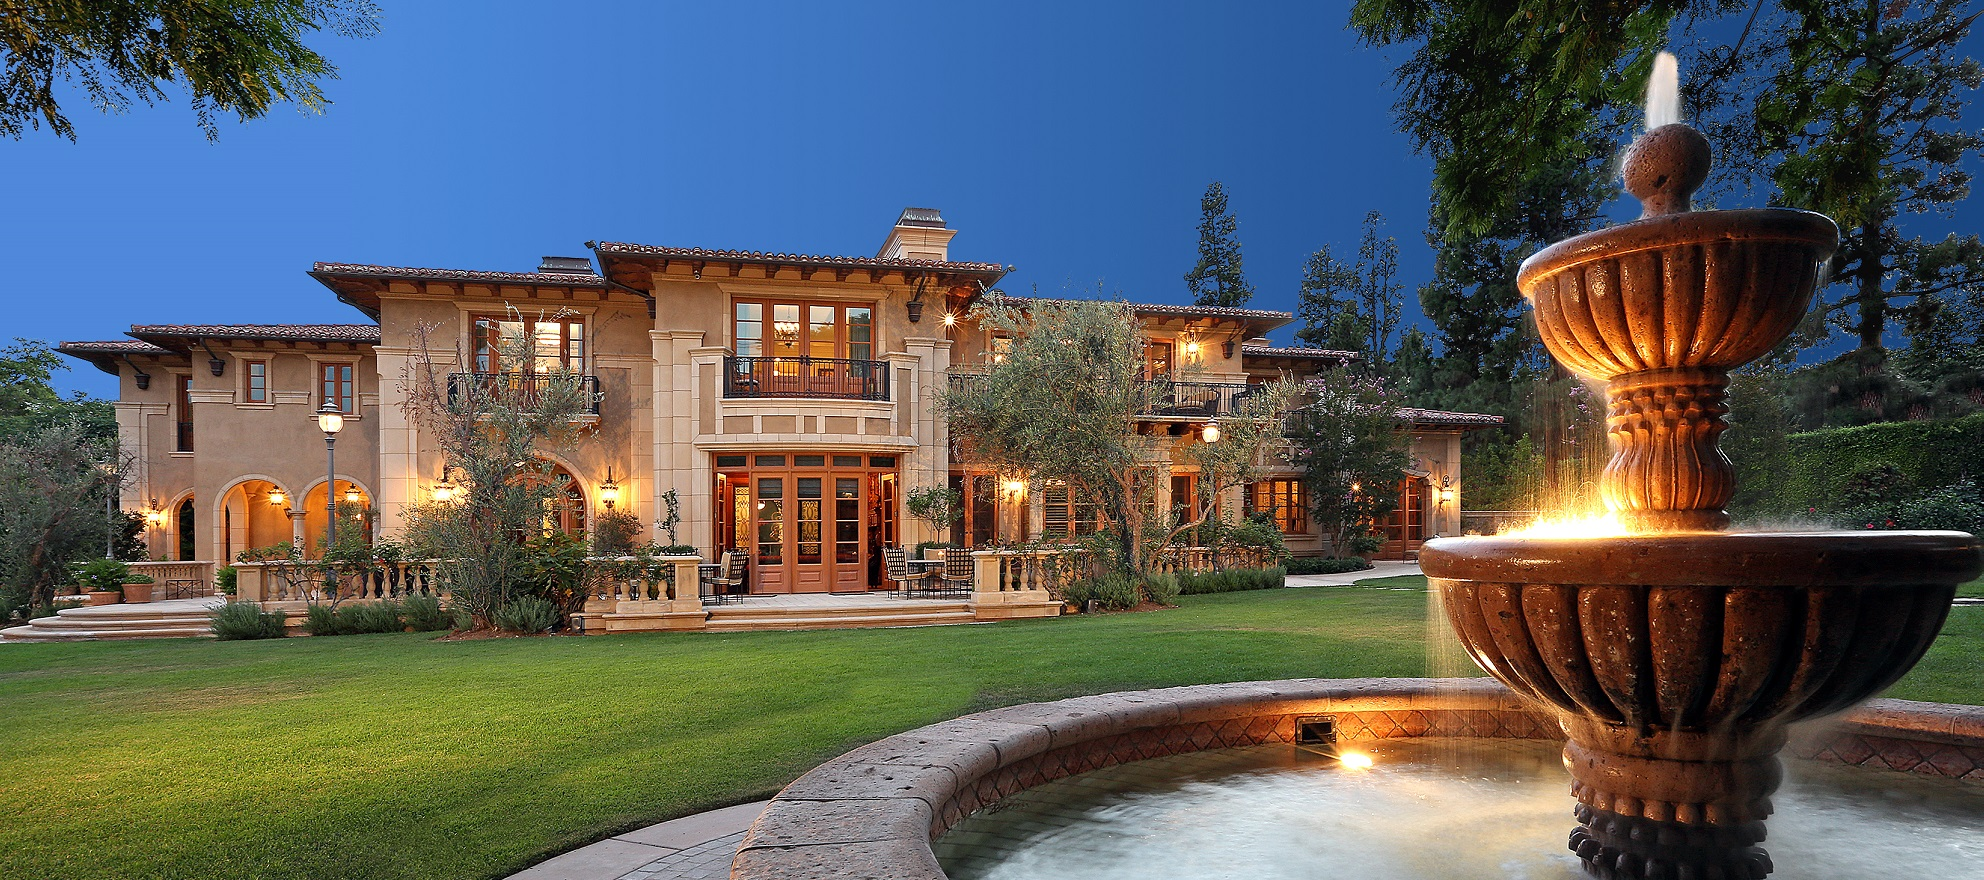 Luxury listing: European masterpiece in the foothills of Beverly Hills